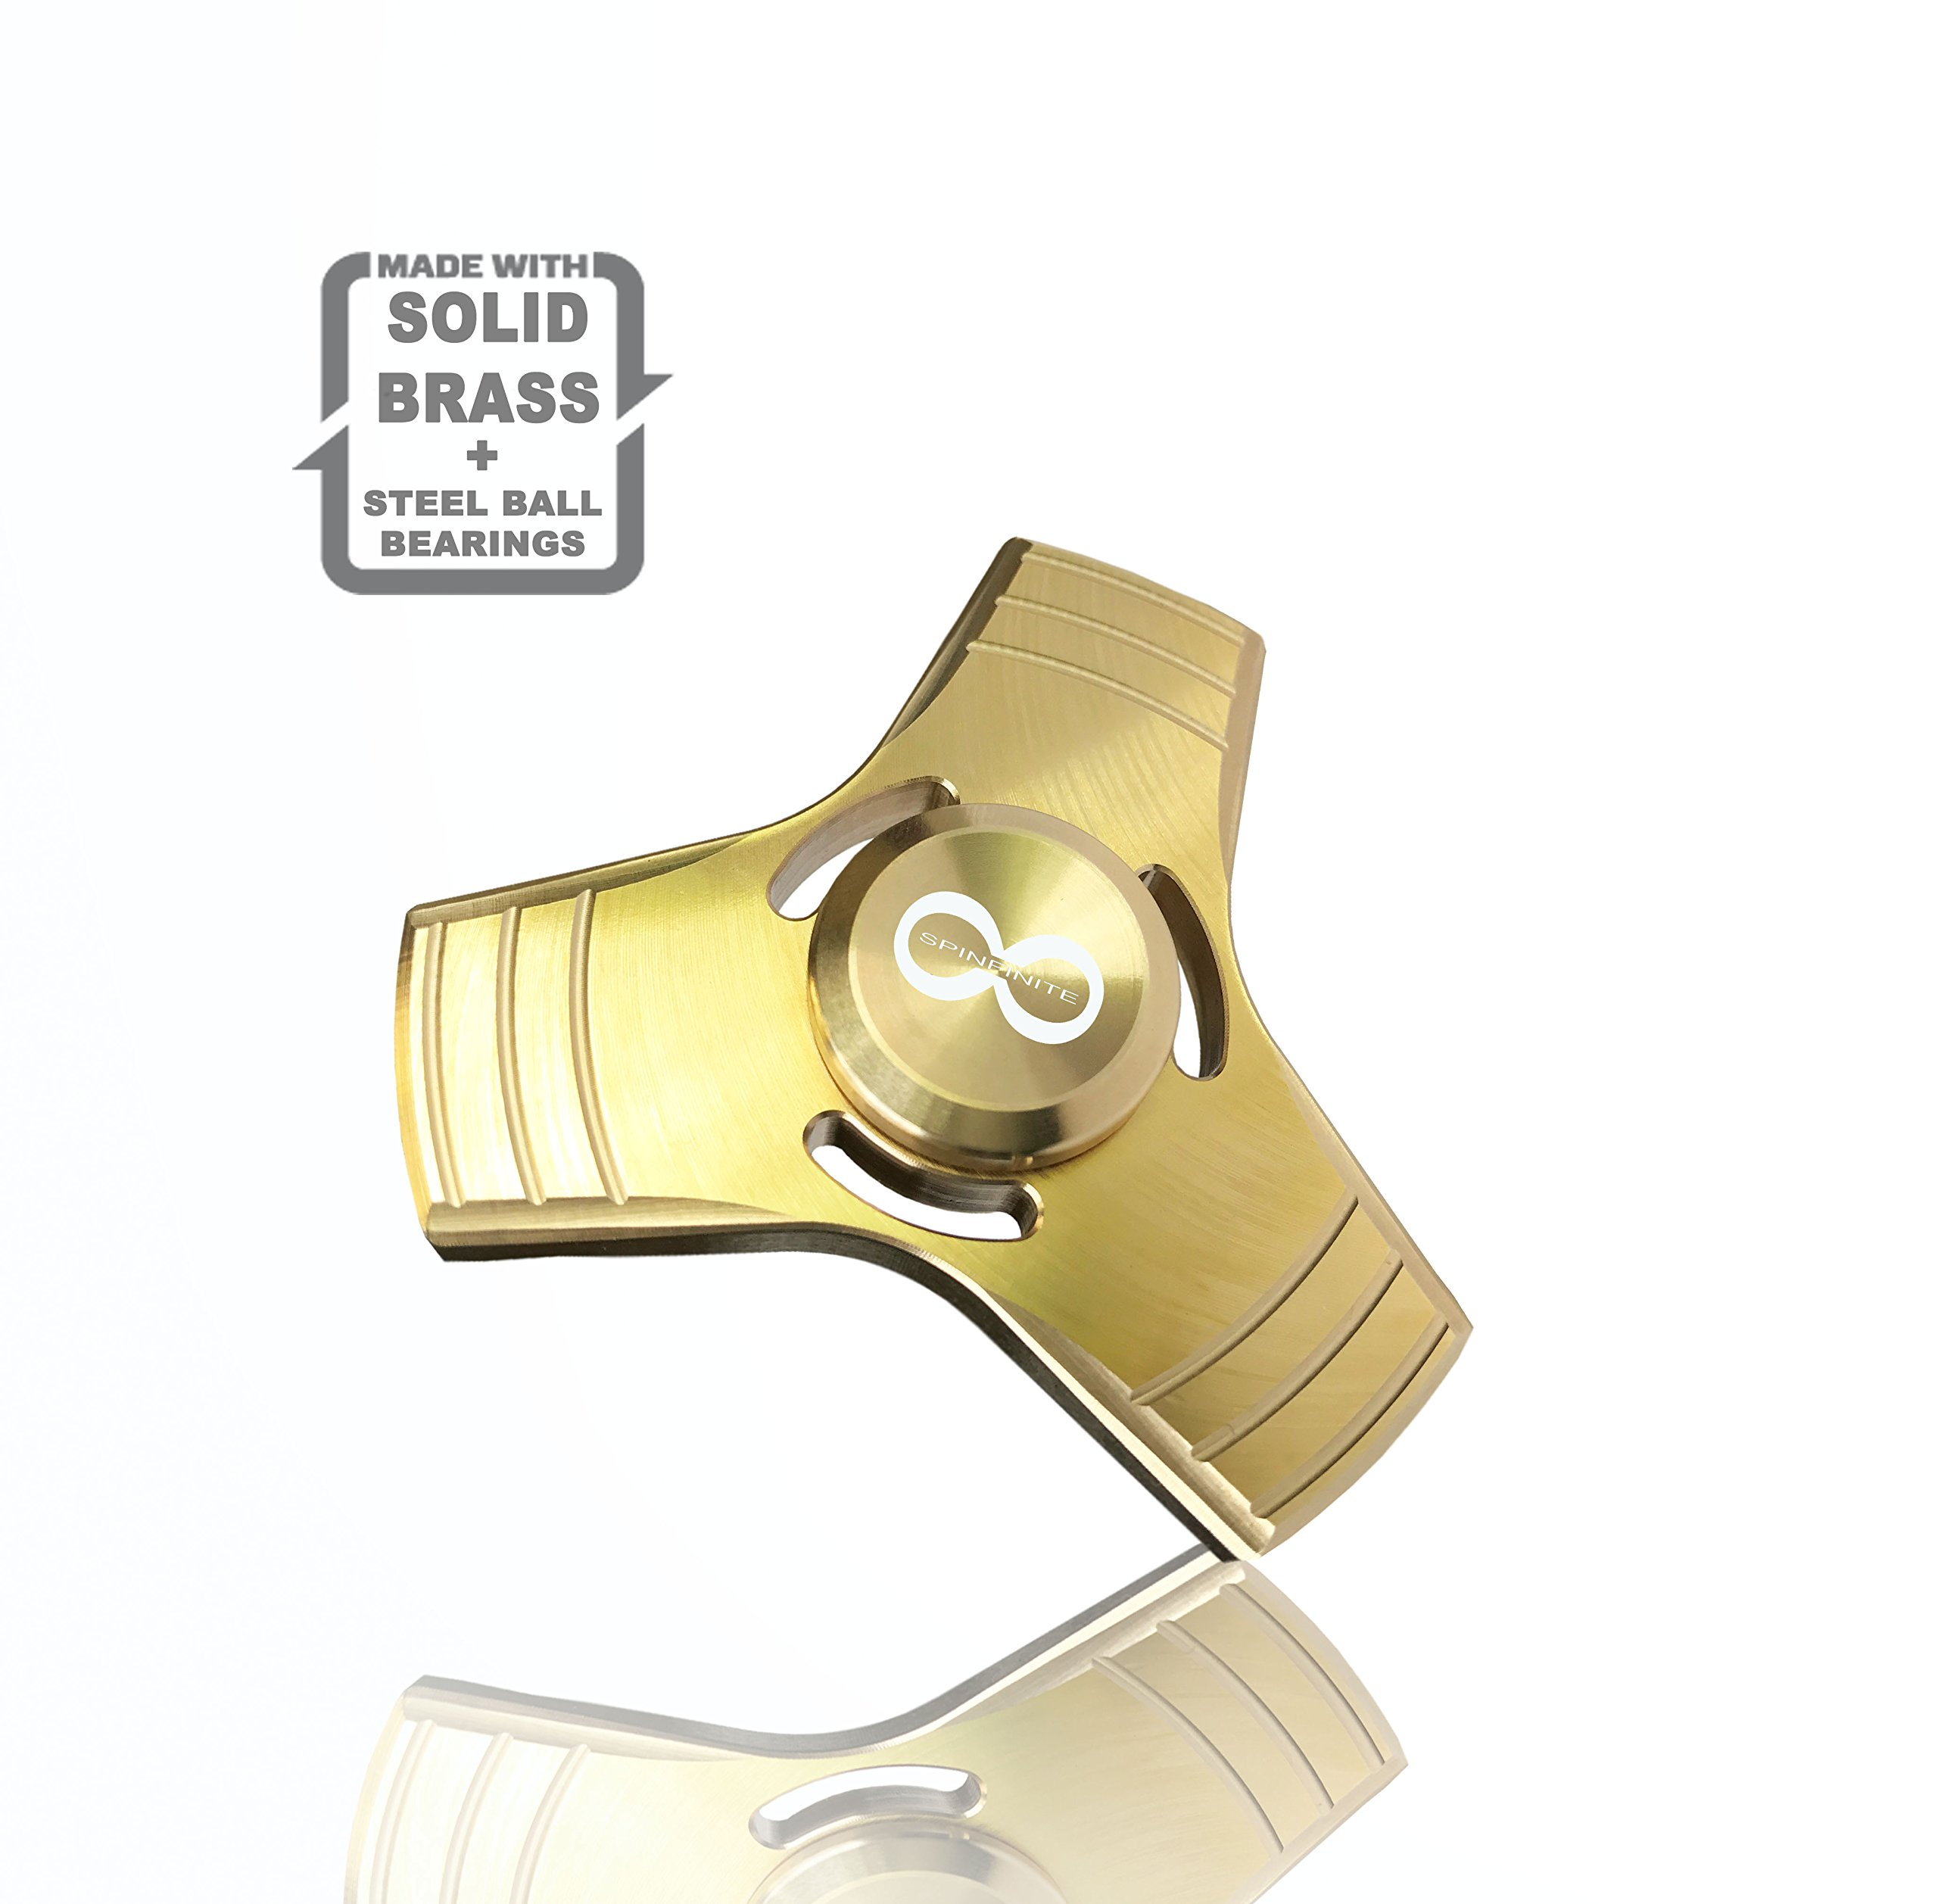 Metal Fidget Spinner toy, Solid Brass Gold Tri Spinner with stainless Steel Bearings which helps to increase focus, relieves stress, anxiety, and boredom. Fidget Spinner + Metal Carrying Case